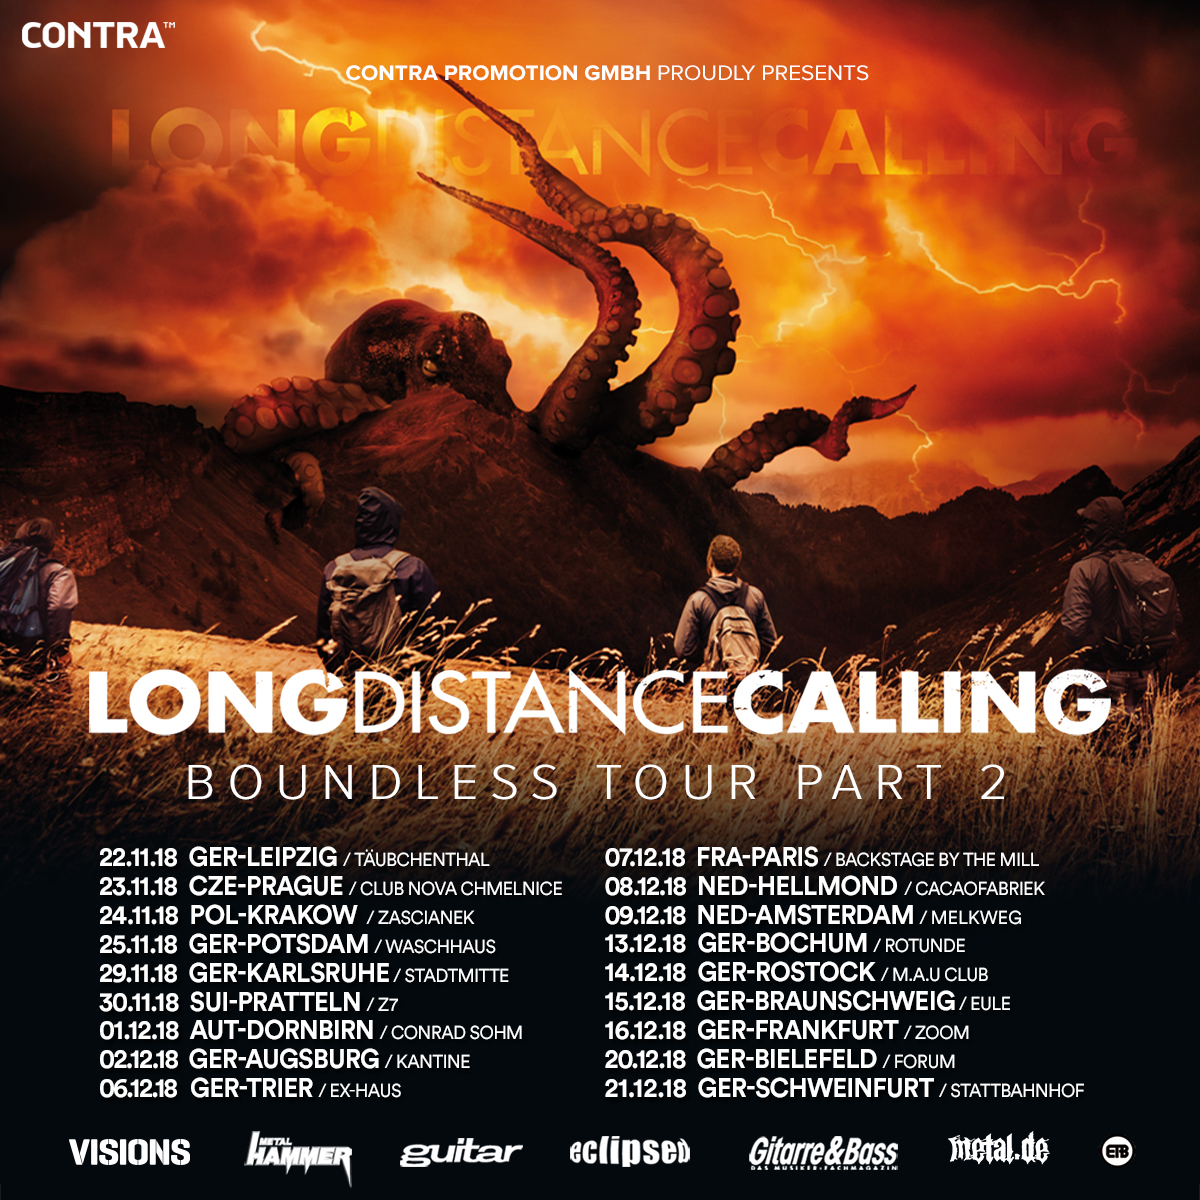 Tourposter Long Distance Calling - Boundless Tour Part 2